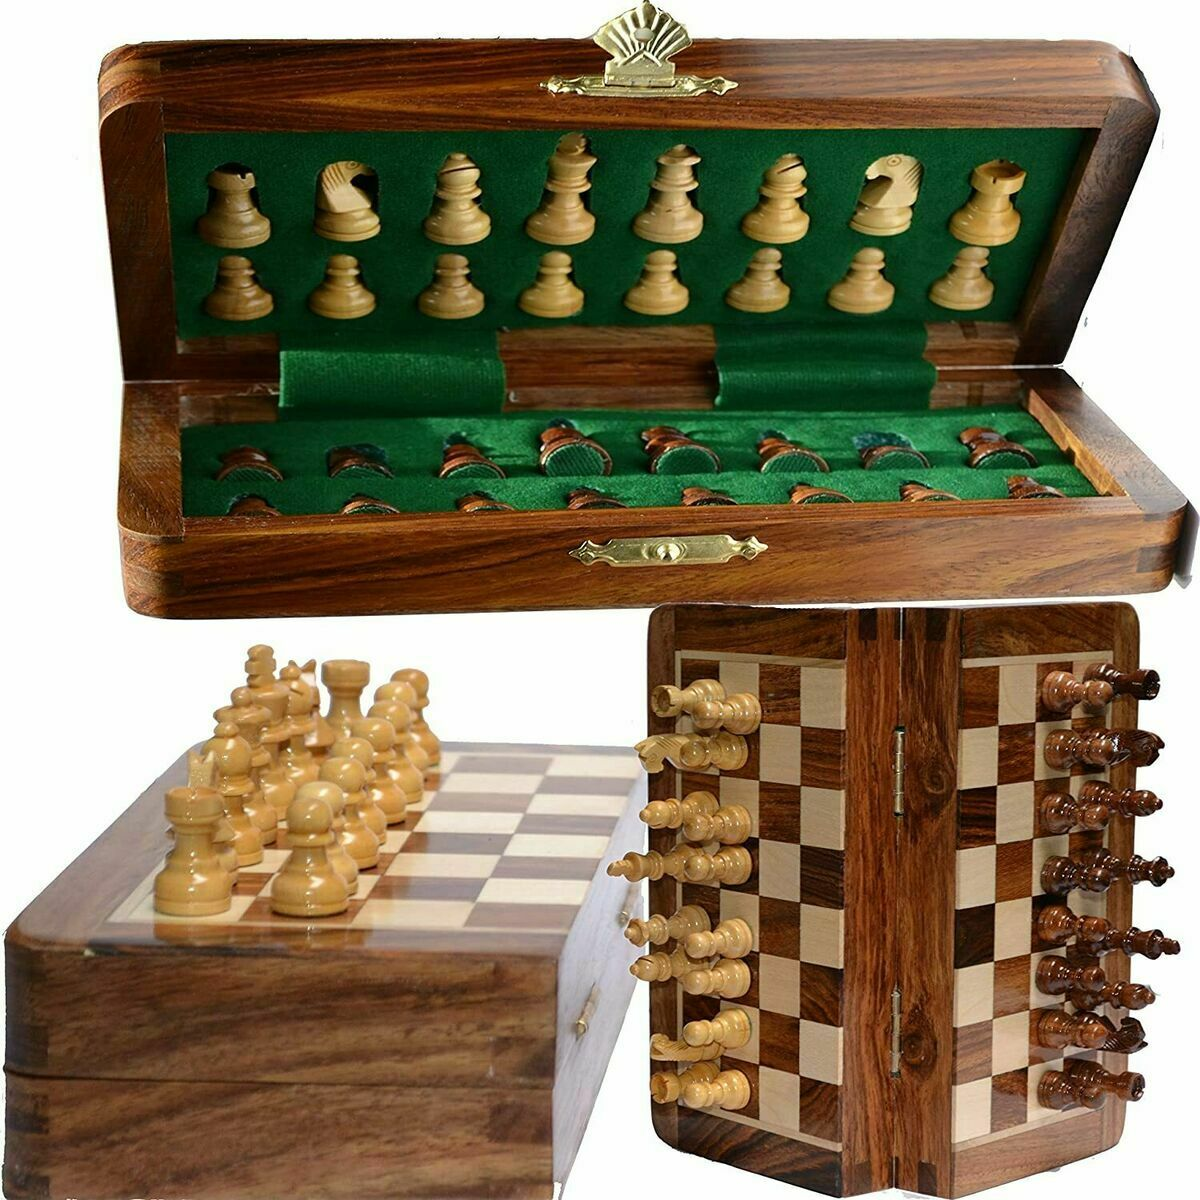 Buy Best Vintage Wooden Chess Set Wood Board Hand Carved Crafted Pieces Folding Game.